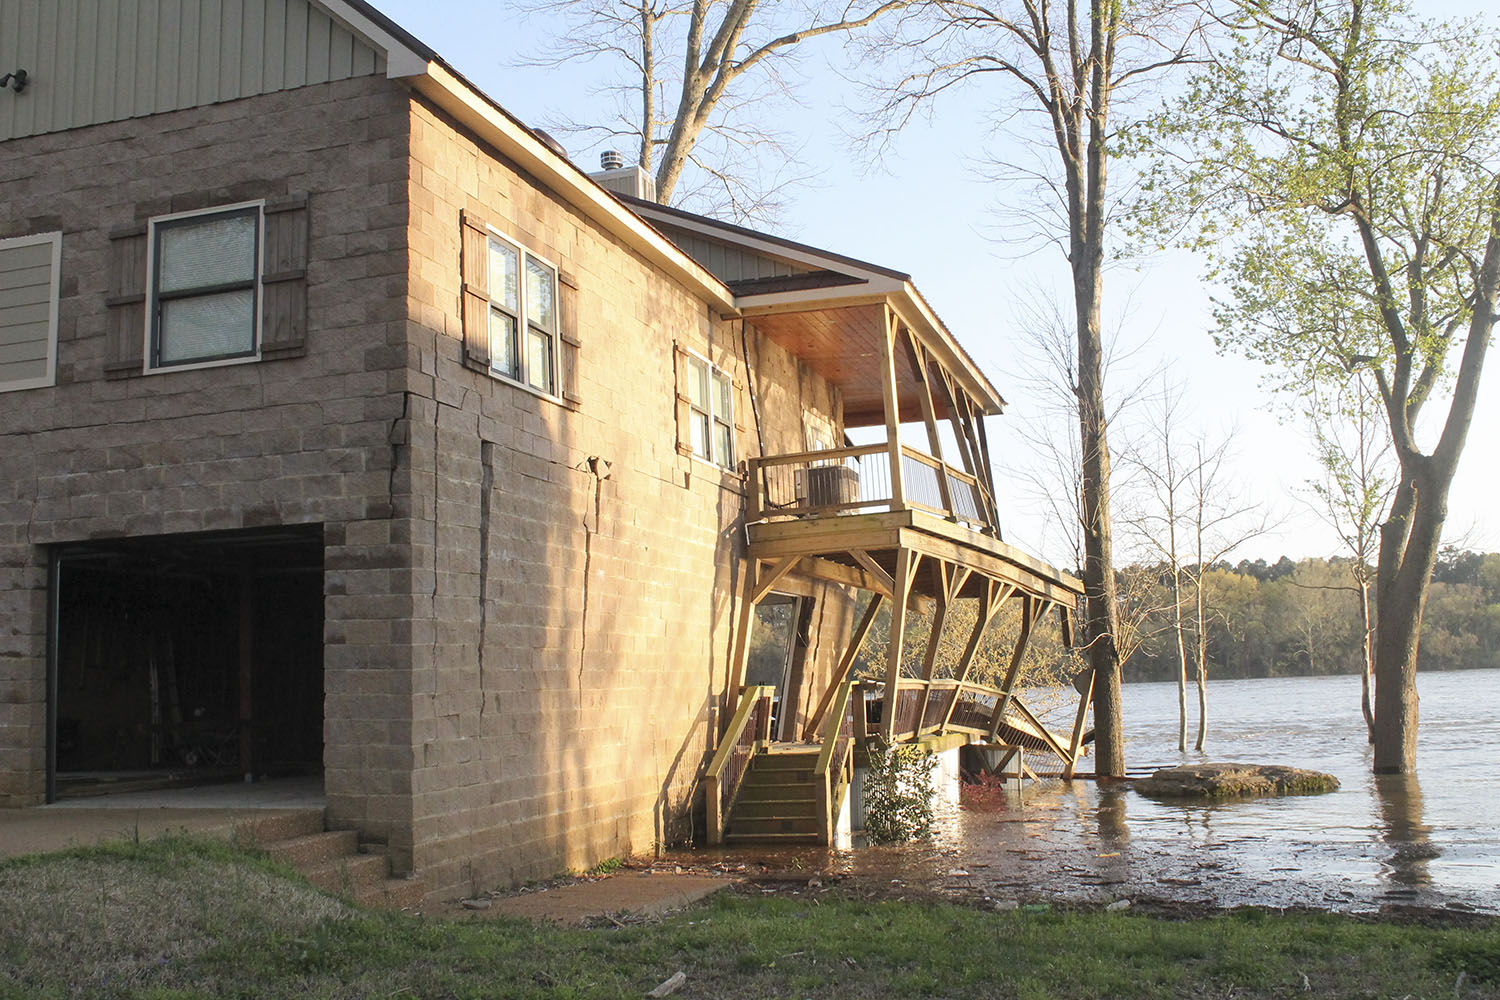 Breakaway Barges Damage House On Tennessee River